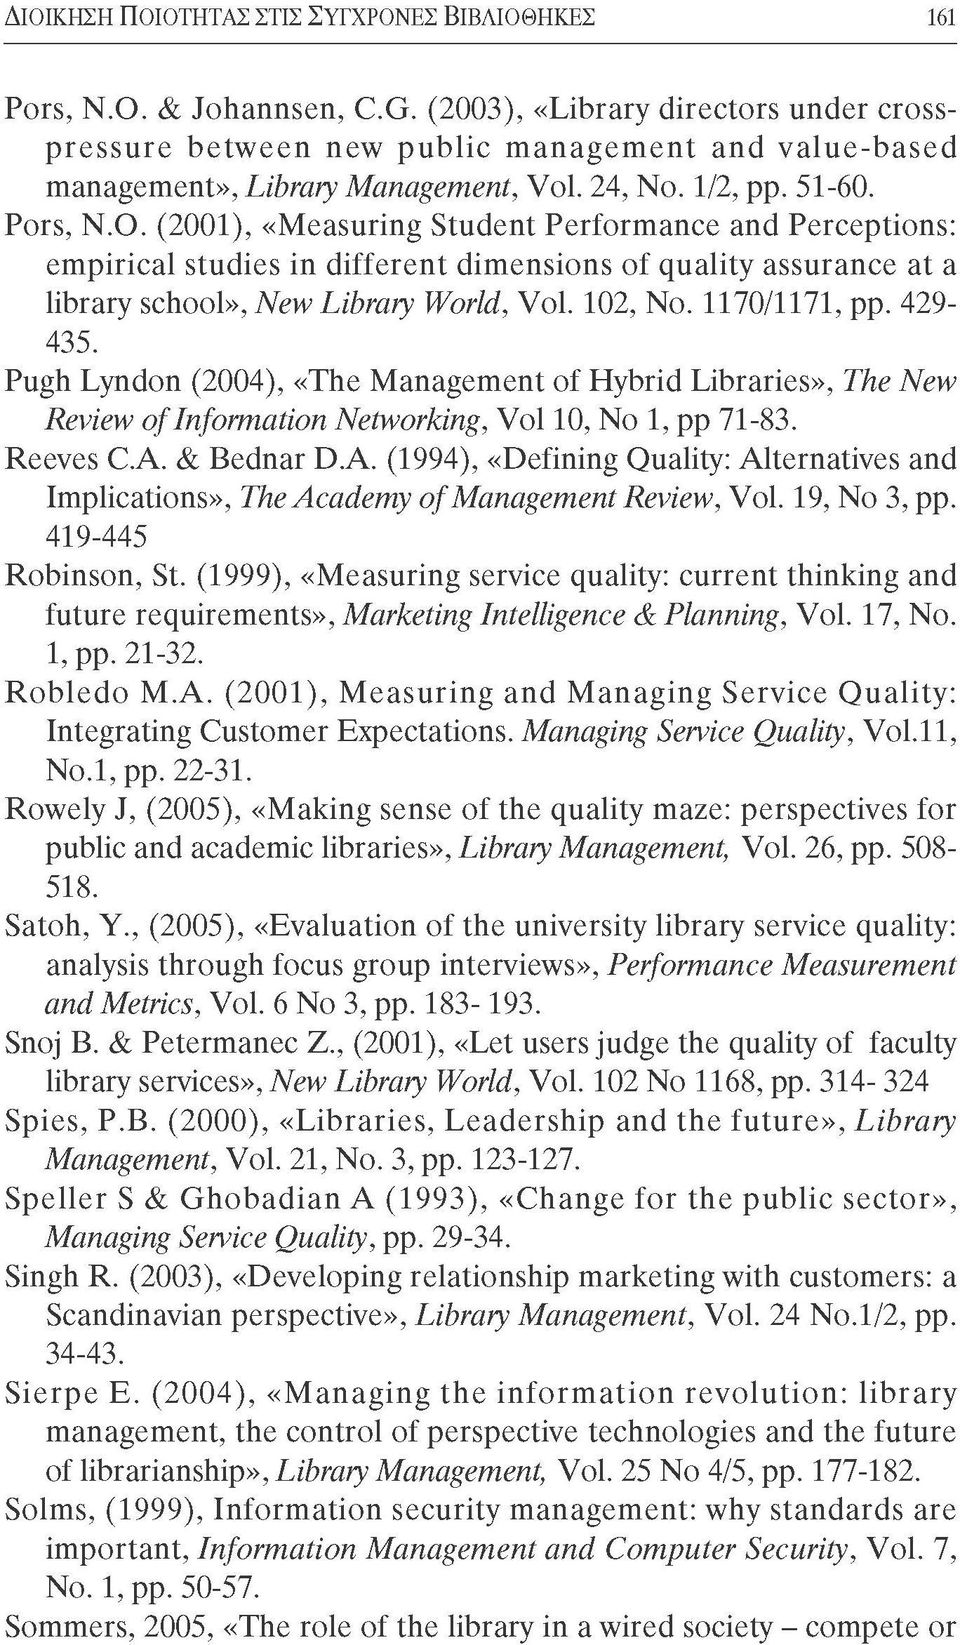 (2001), «Measuring Student Performance and Perceptions: empirical studies in different dimensions of quality assurance at a library school», New Library World, Vol. 102, No. 1170/1171, pp. 429-435.